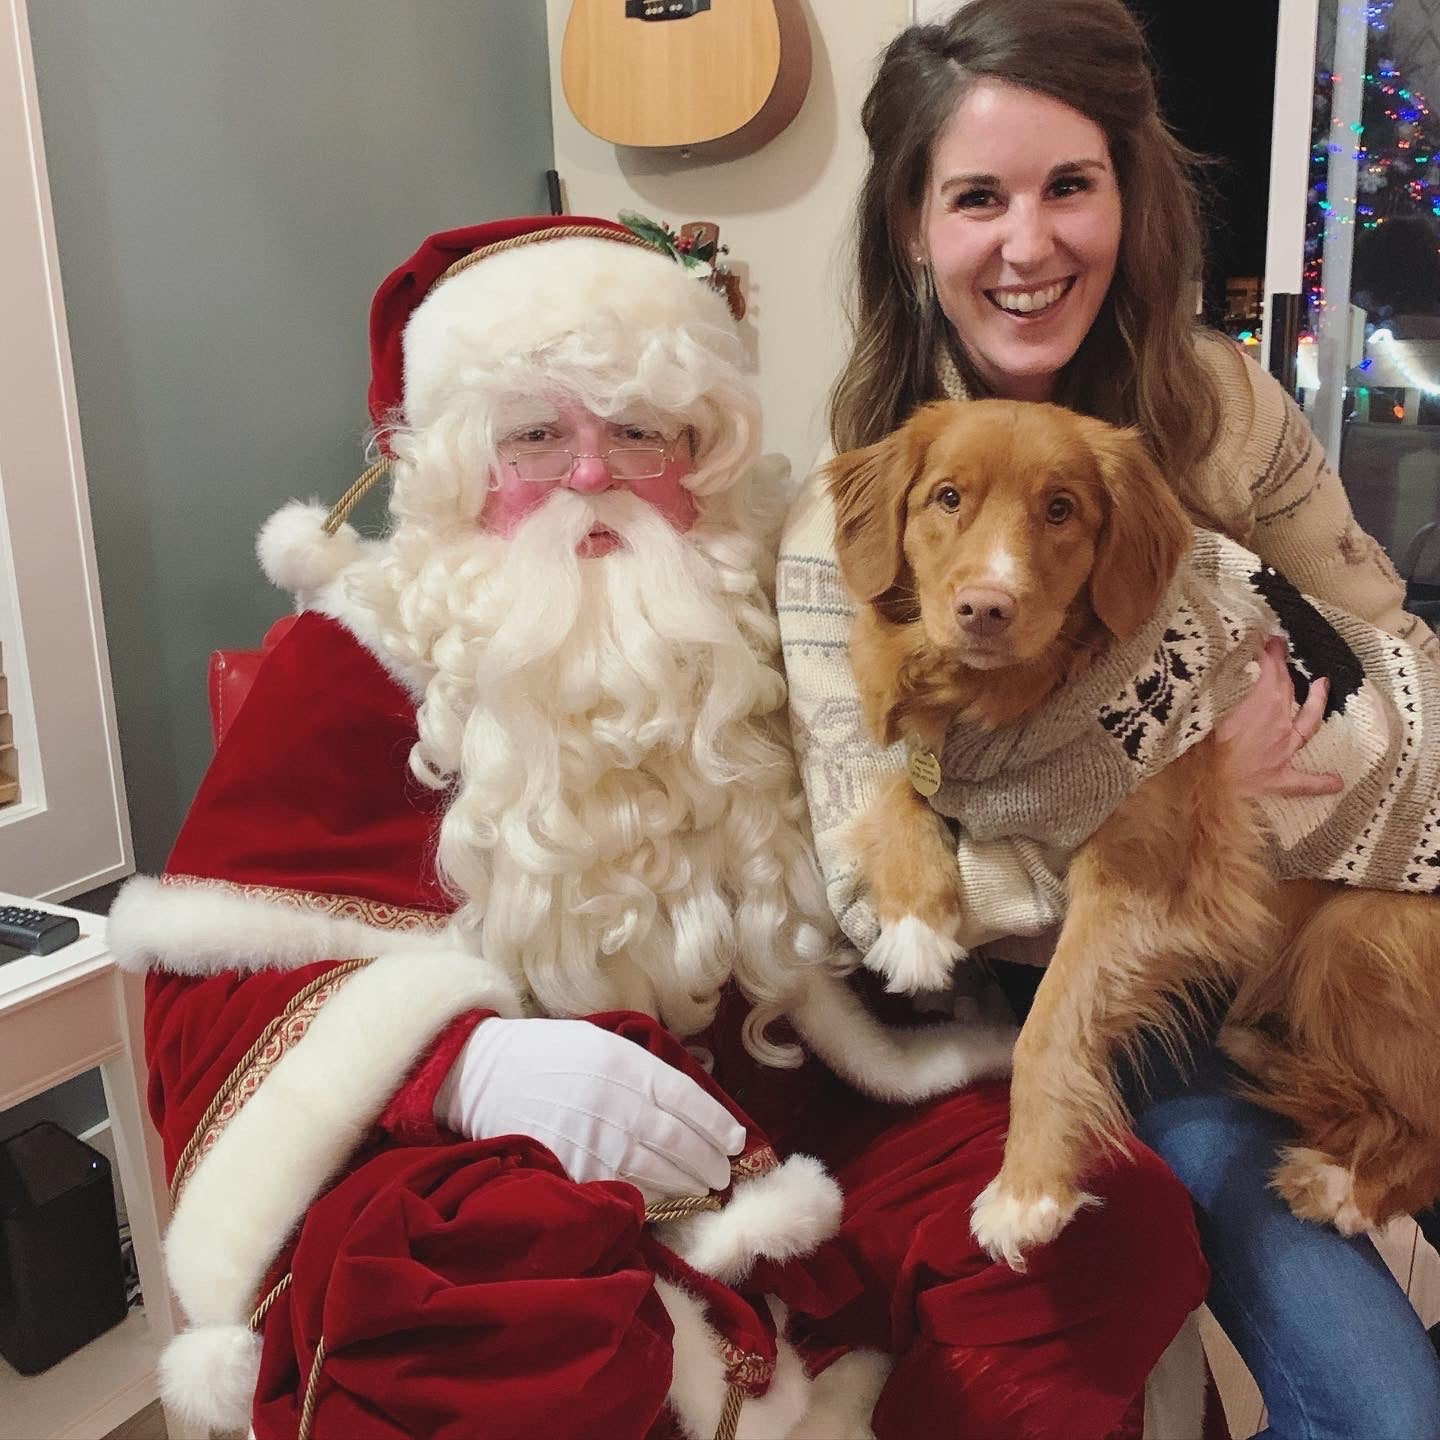 Ginny the dog poses with her mom and Santa as part of the What Sparks Holiday Joy blog post with Rocky Mountain Soap Company.